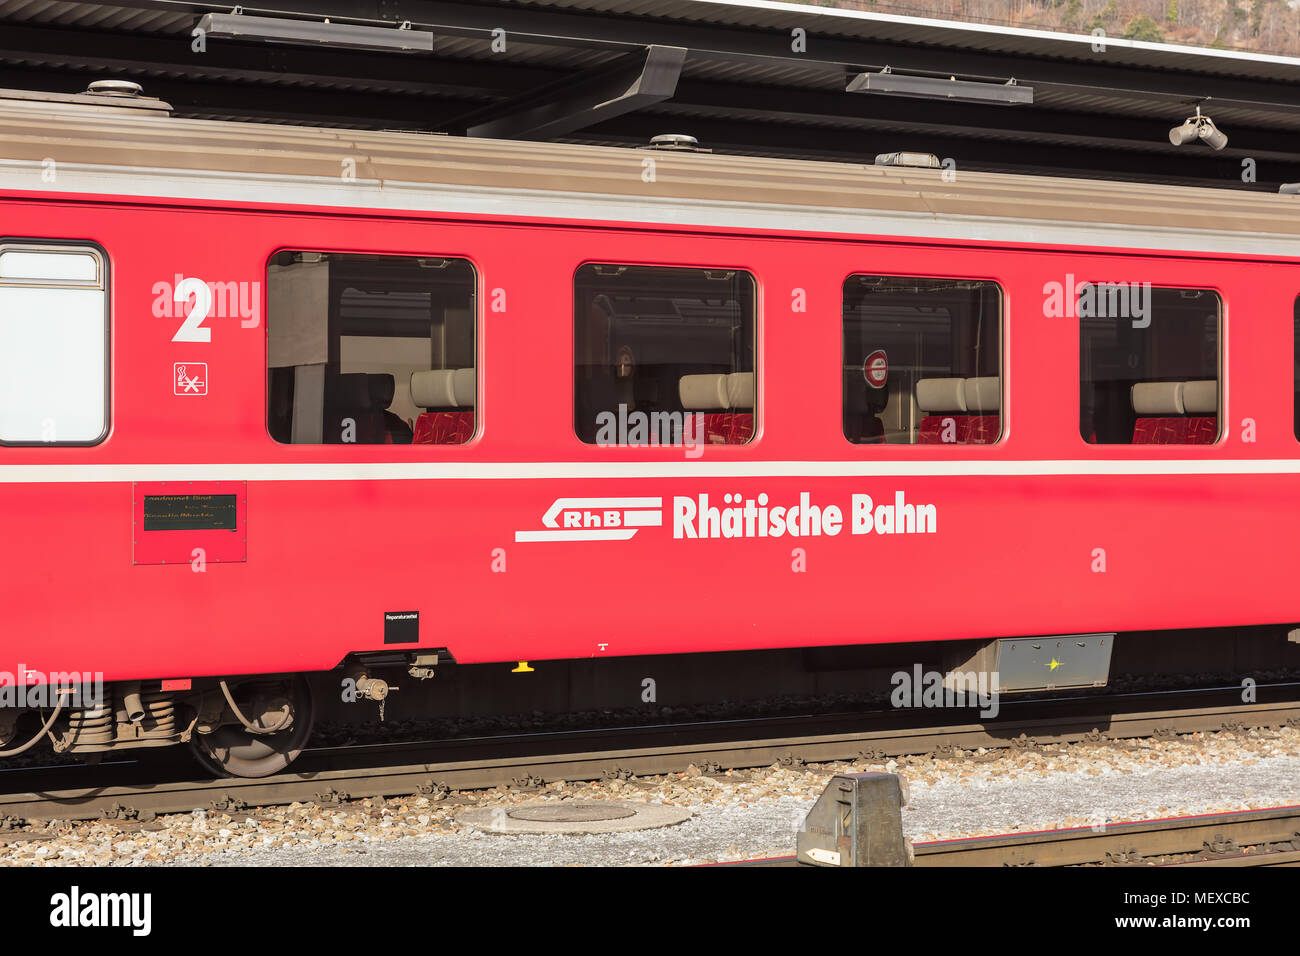 Landquart, Switzerland - 3 March, 2017: a railroad car of the Rhaetian Railway at a platform of the Landquart railway station. The Rhaetian Railway is - Stock Image